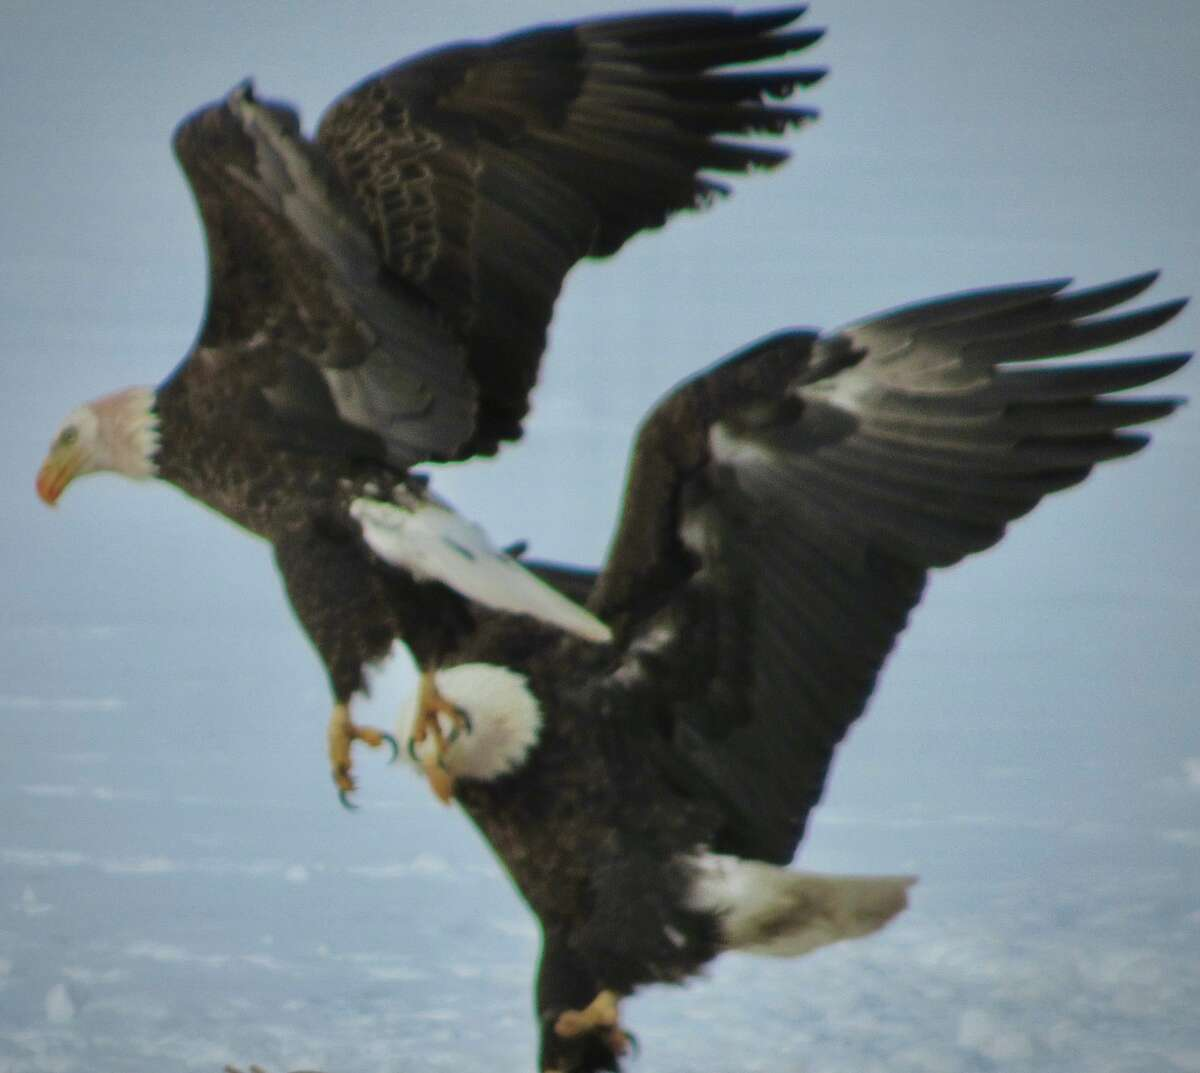 Tom Surprenant: On Feb. 24 there was a battle on the ice in the Great Sacandaga Lake area.